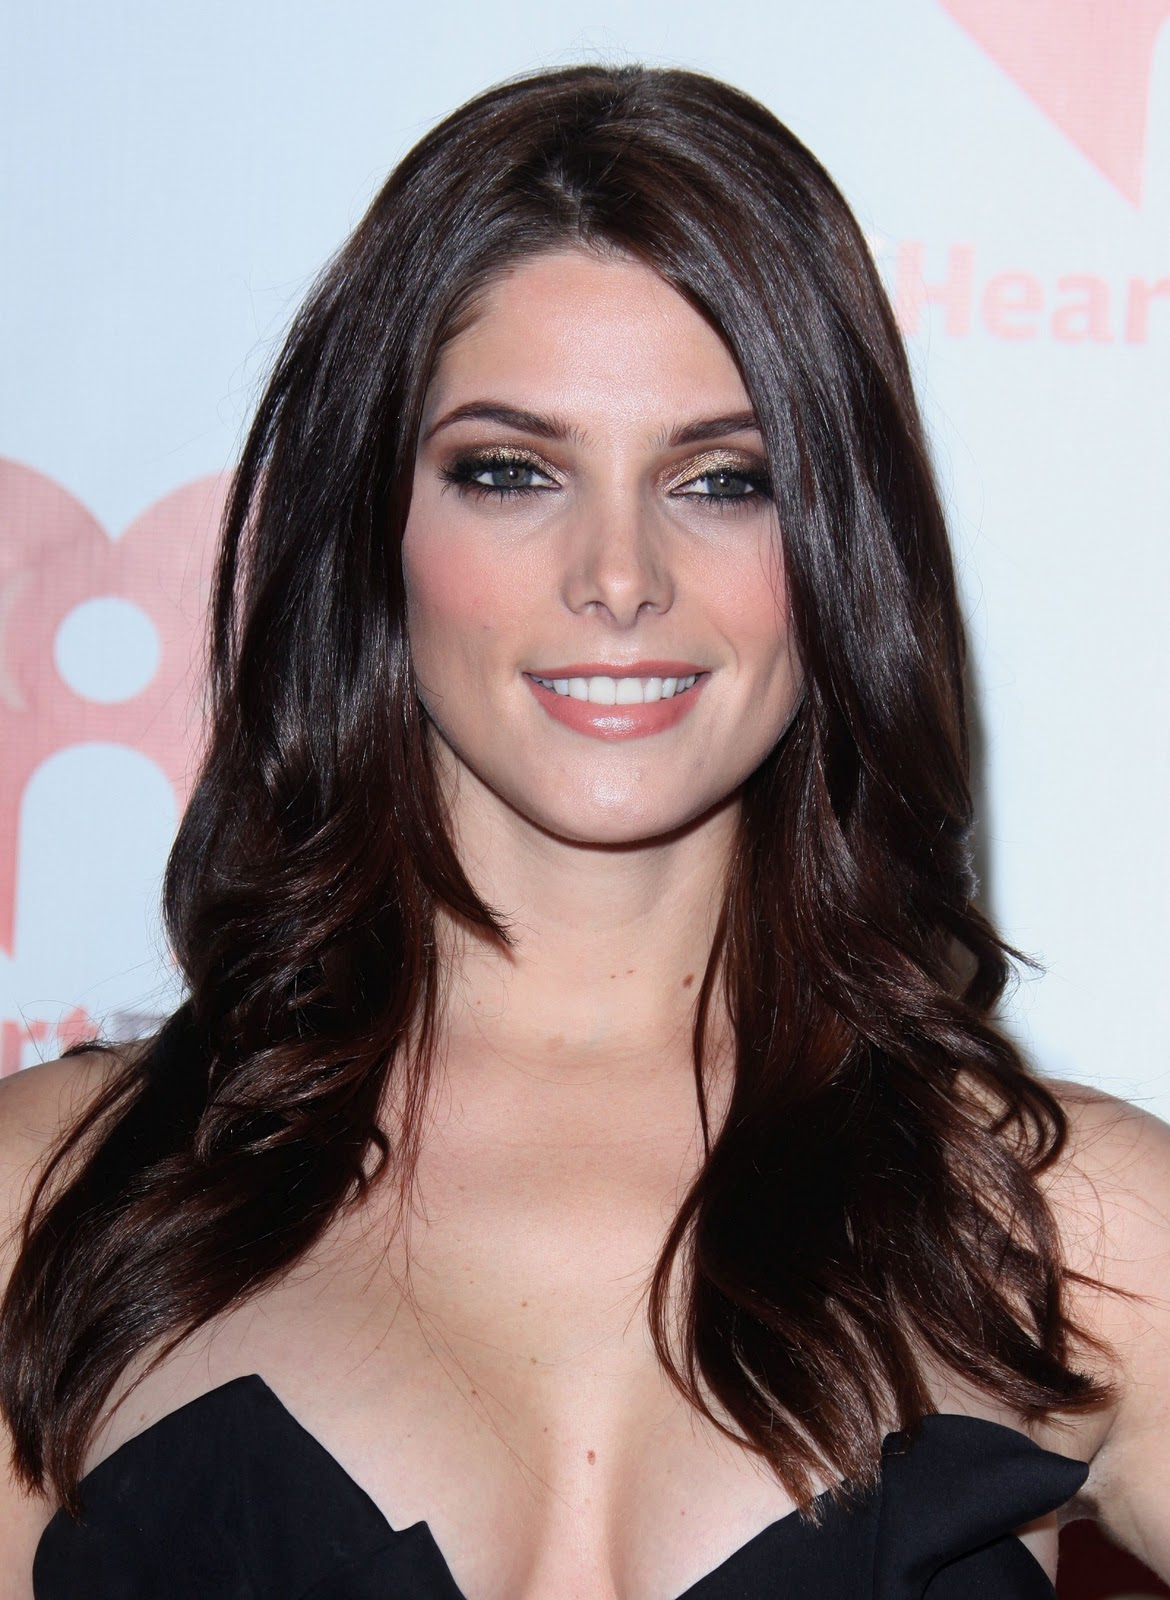 http://3.bp.blogspot.com/-mjJVDs5jOnU/Tn-G3cqy38I/AAAAAAAAHLA/FxRpXhYZsyw/s1600/Ashley-Greene-iradio-2011-02.jpg